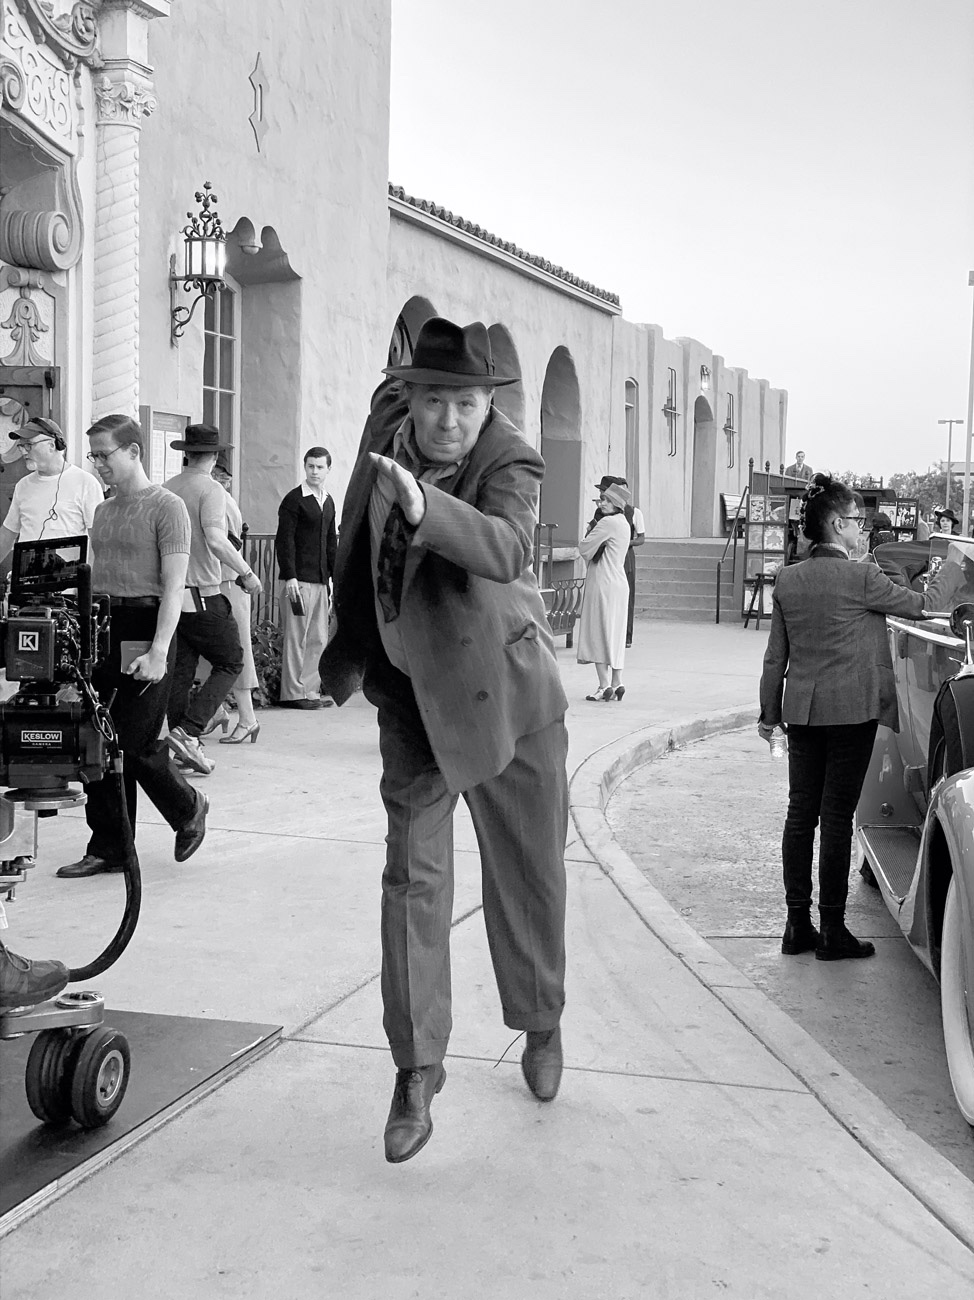 Oldman seems to fly toward the camera in suit and tie.